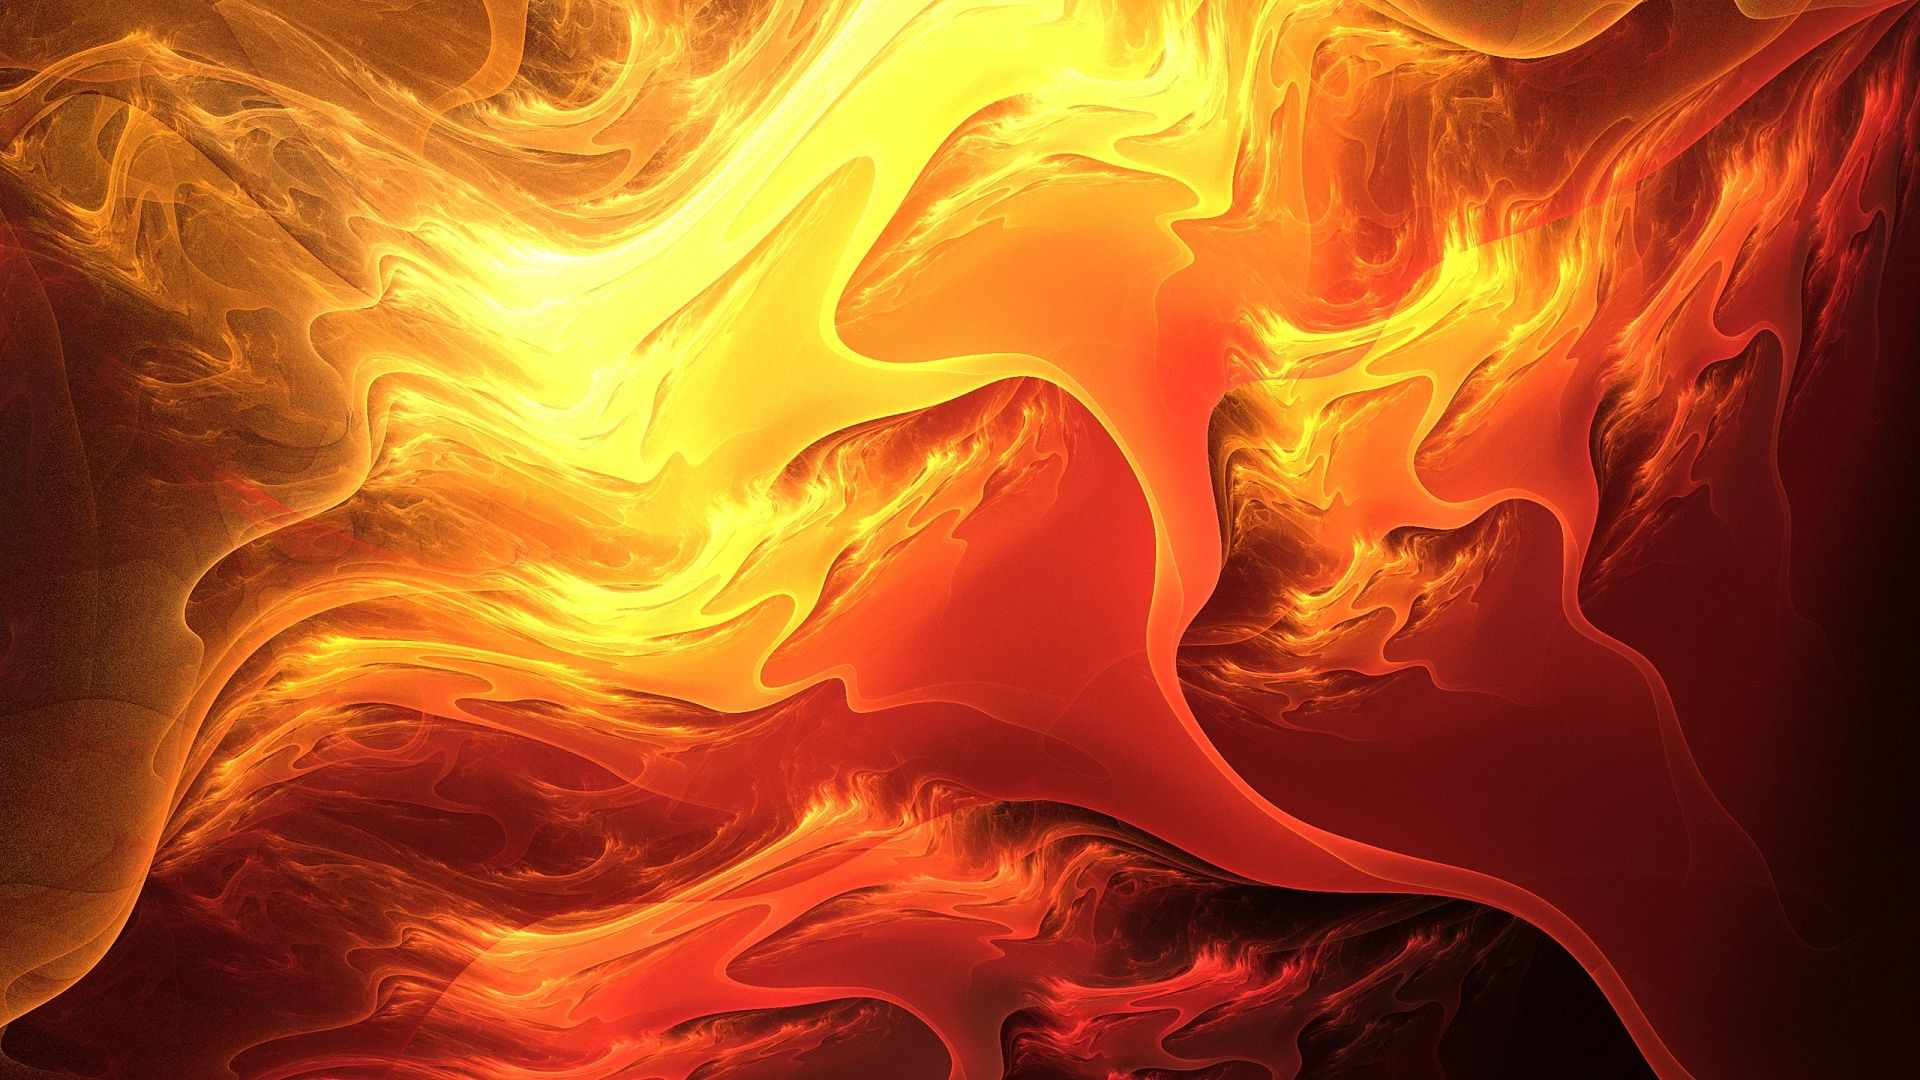 1920x1080 3d Abstract Color Orange Digital Hd Wallpapers 1080p Abstract Bright Paintings Fire Art